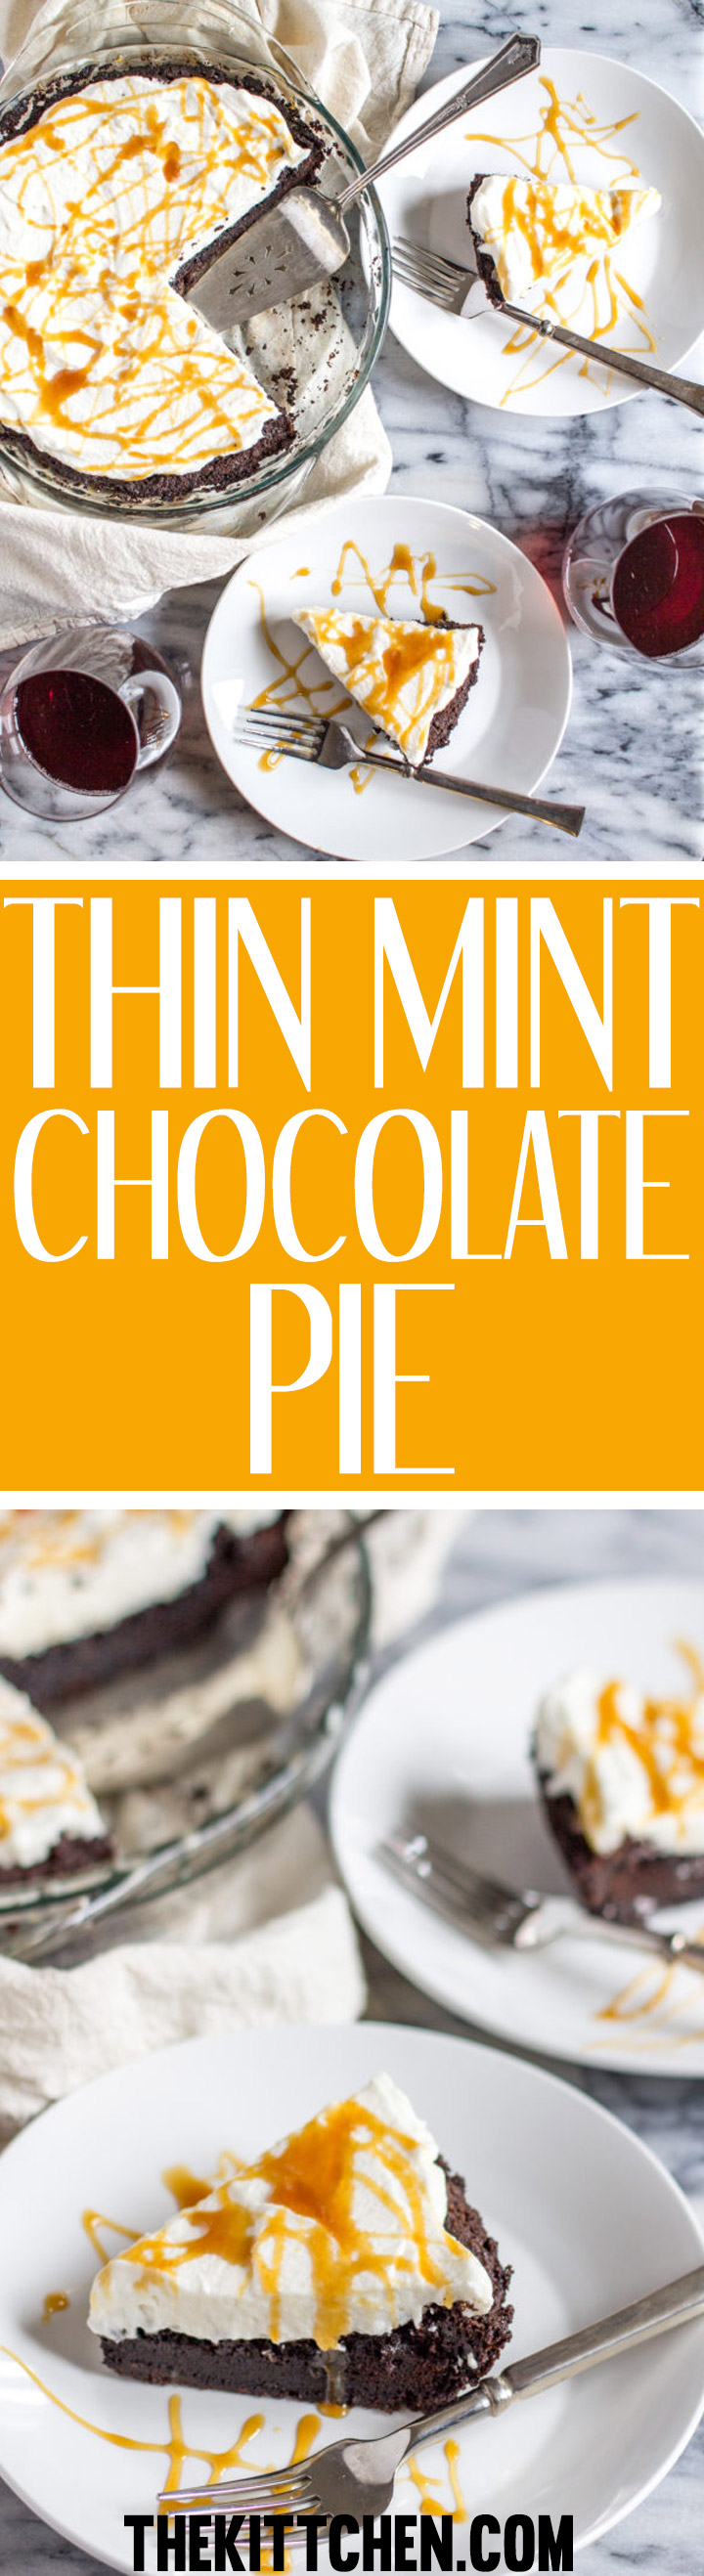 This decadent thin mint chocolate pie has a thin mint cookie crust a rich moist chocolate center topped with freshly whipped cream. When it comes to baking, this is one of the easiest recipes out there, it takes just minutes of active preparation time to make.